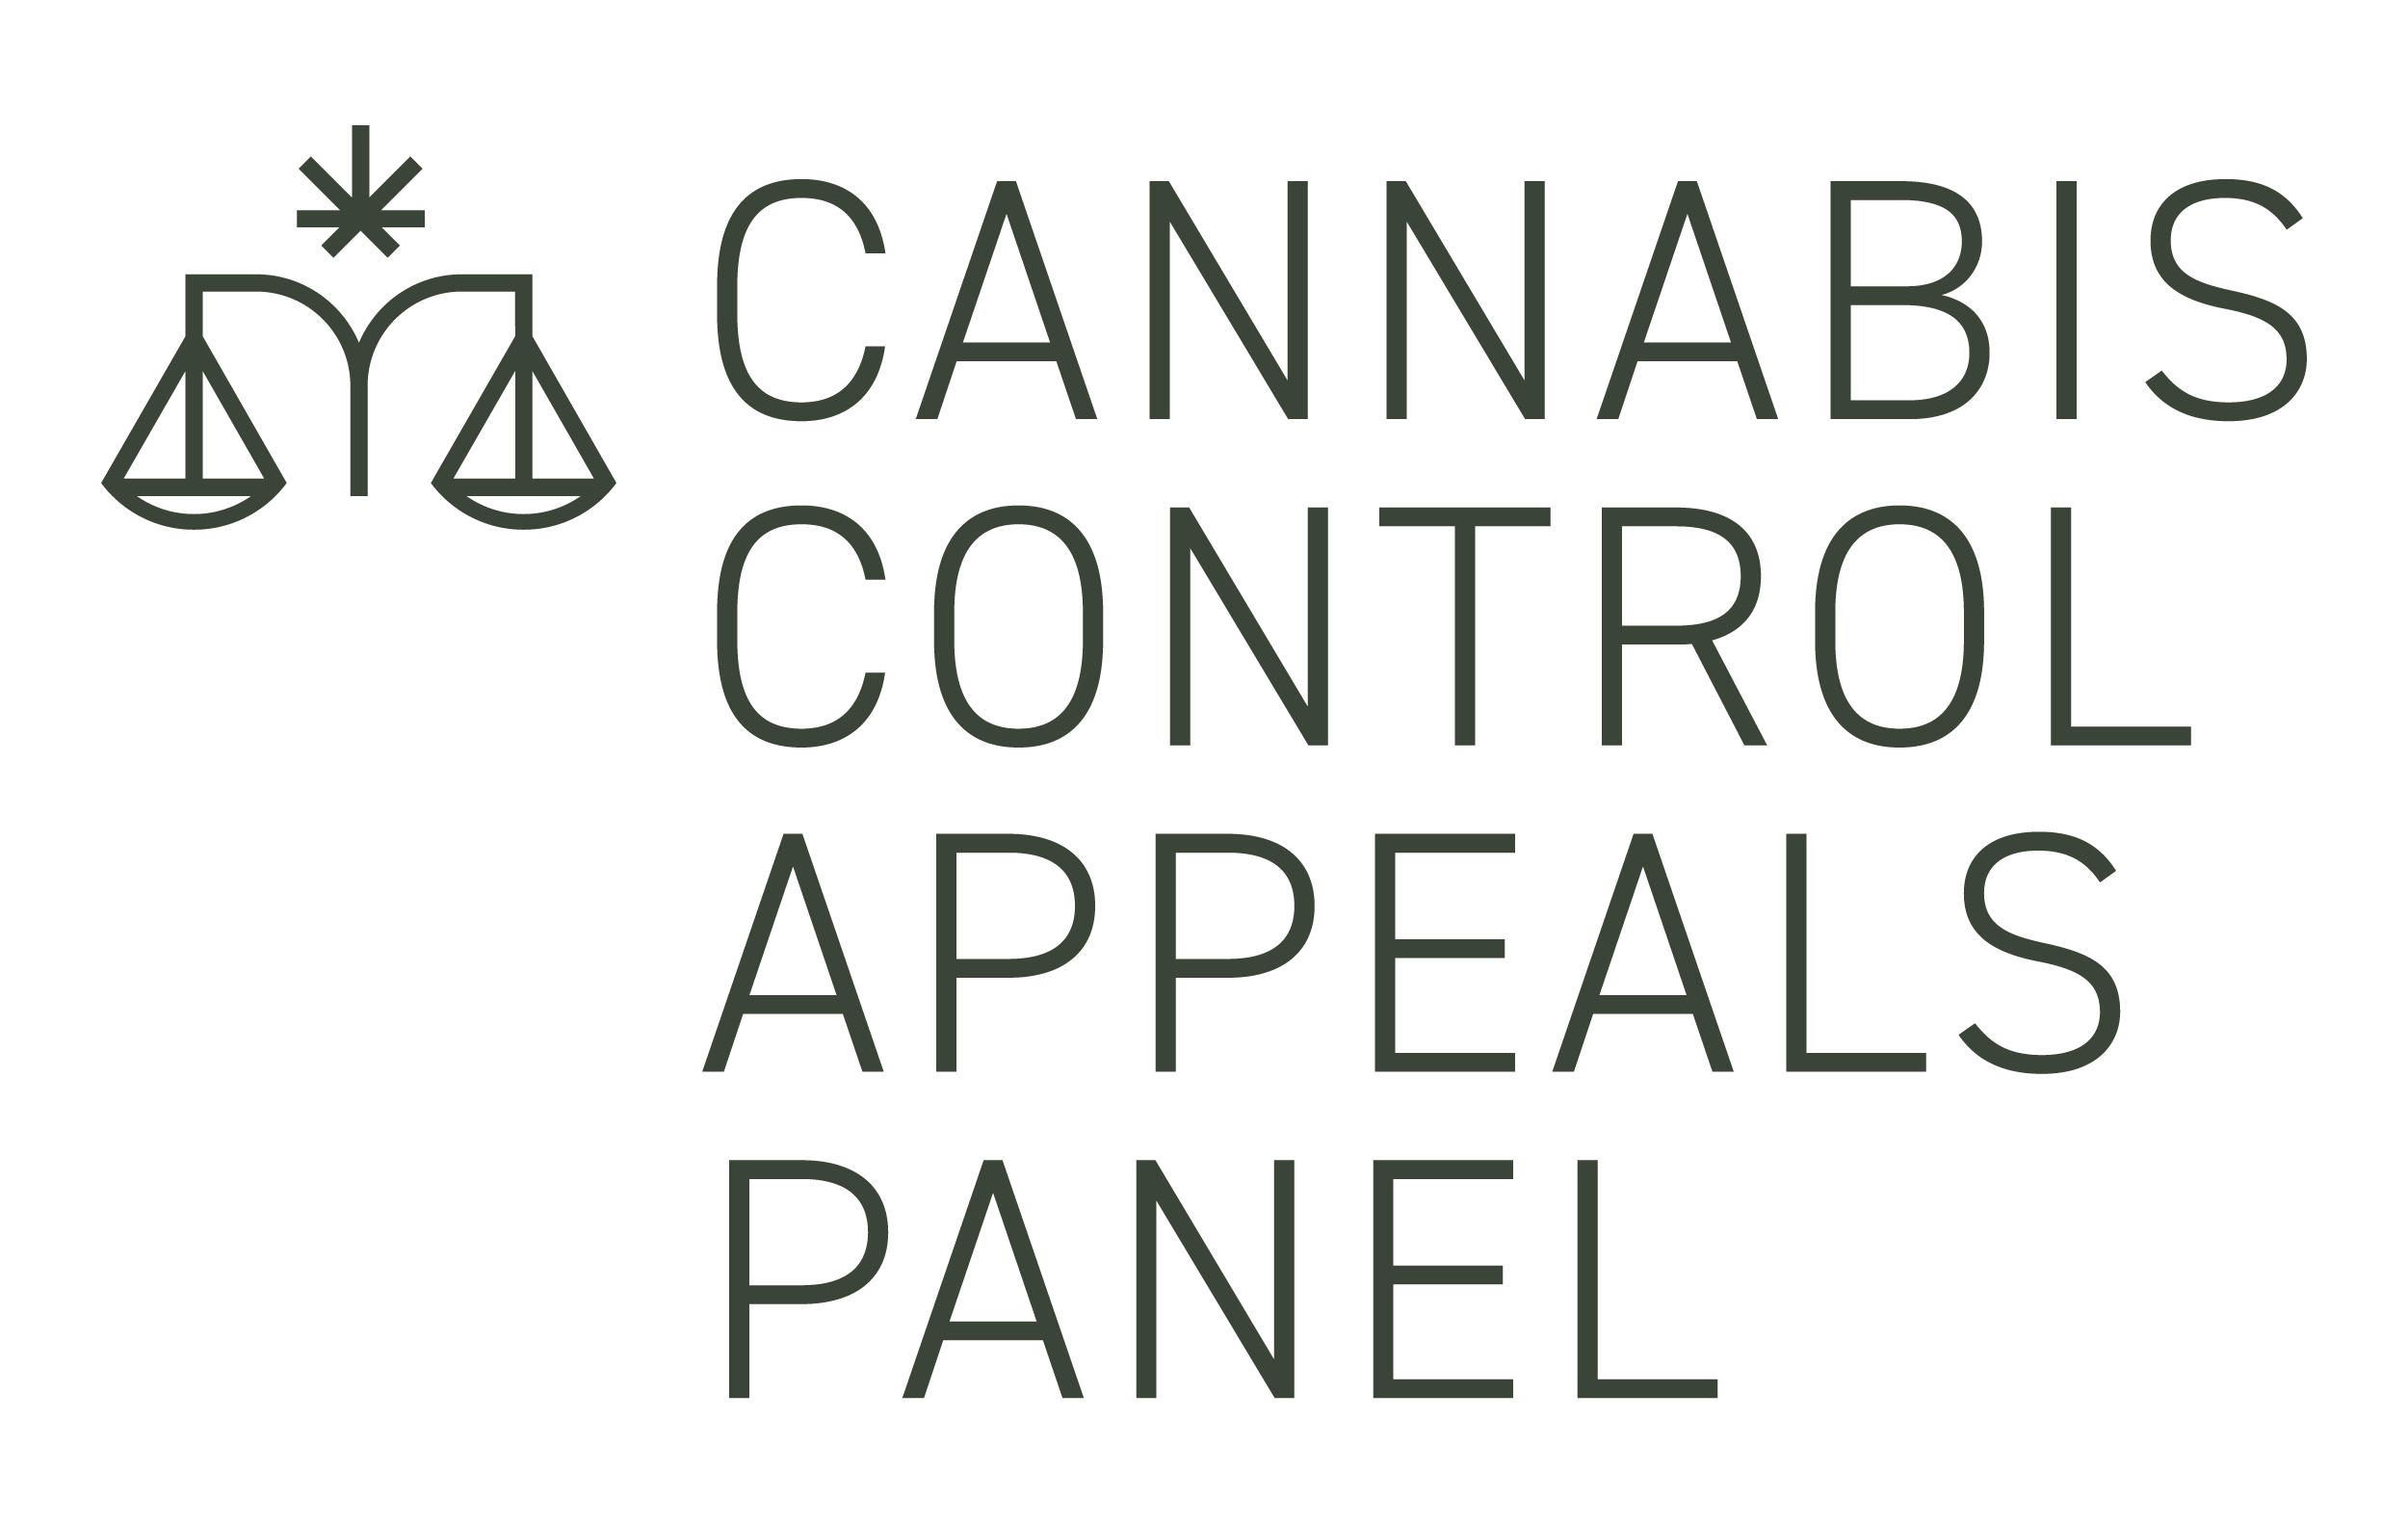 Cannabis Control Appeals Panel Logo - Link to page